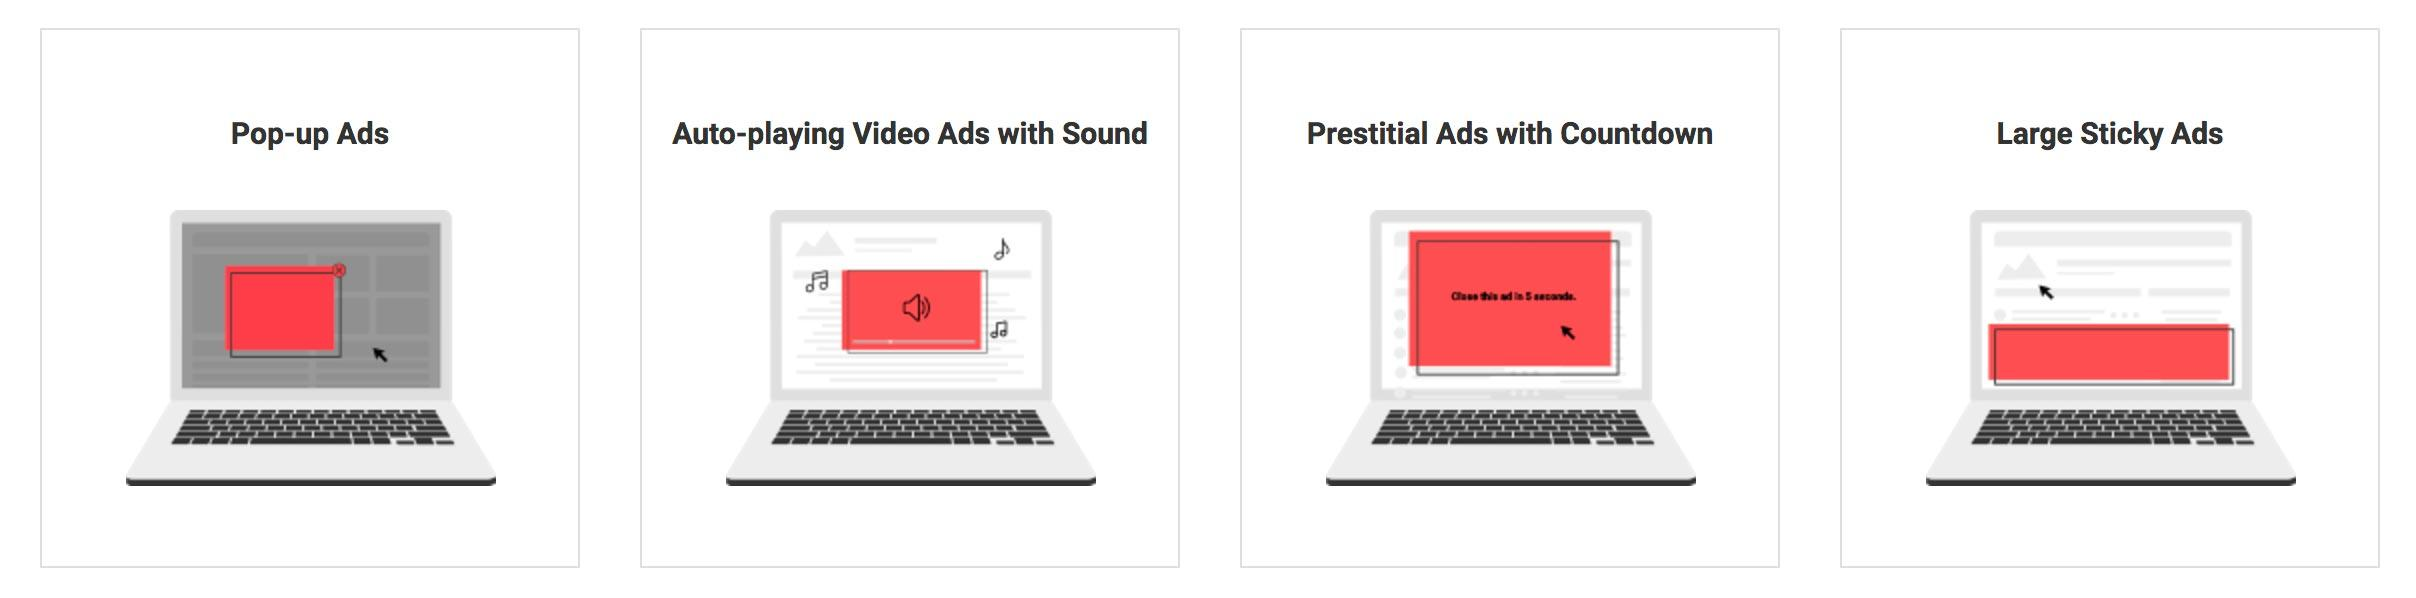 Google Chrome in 2018 will follow the Coalition for Better Ads' standards by blocking several types of intrusive ads.